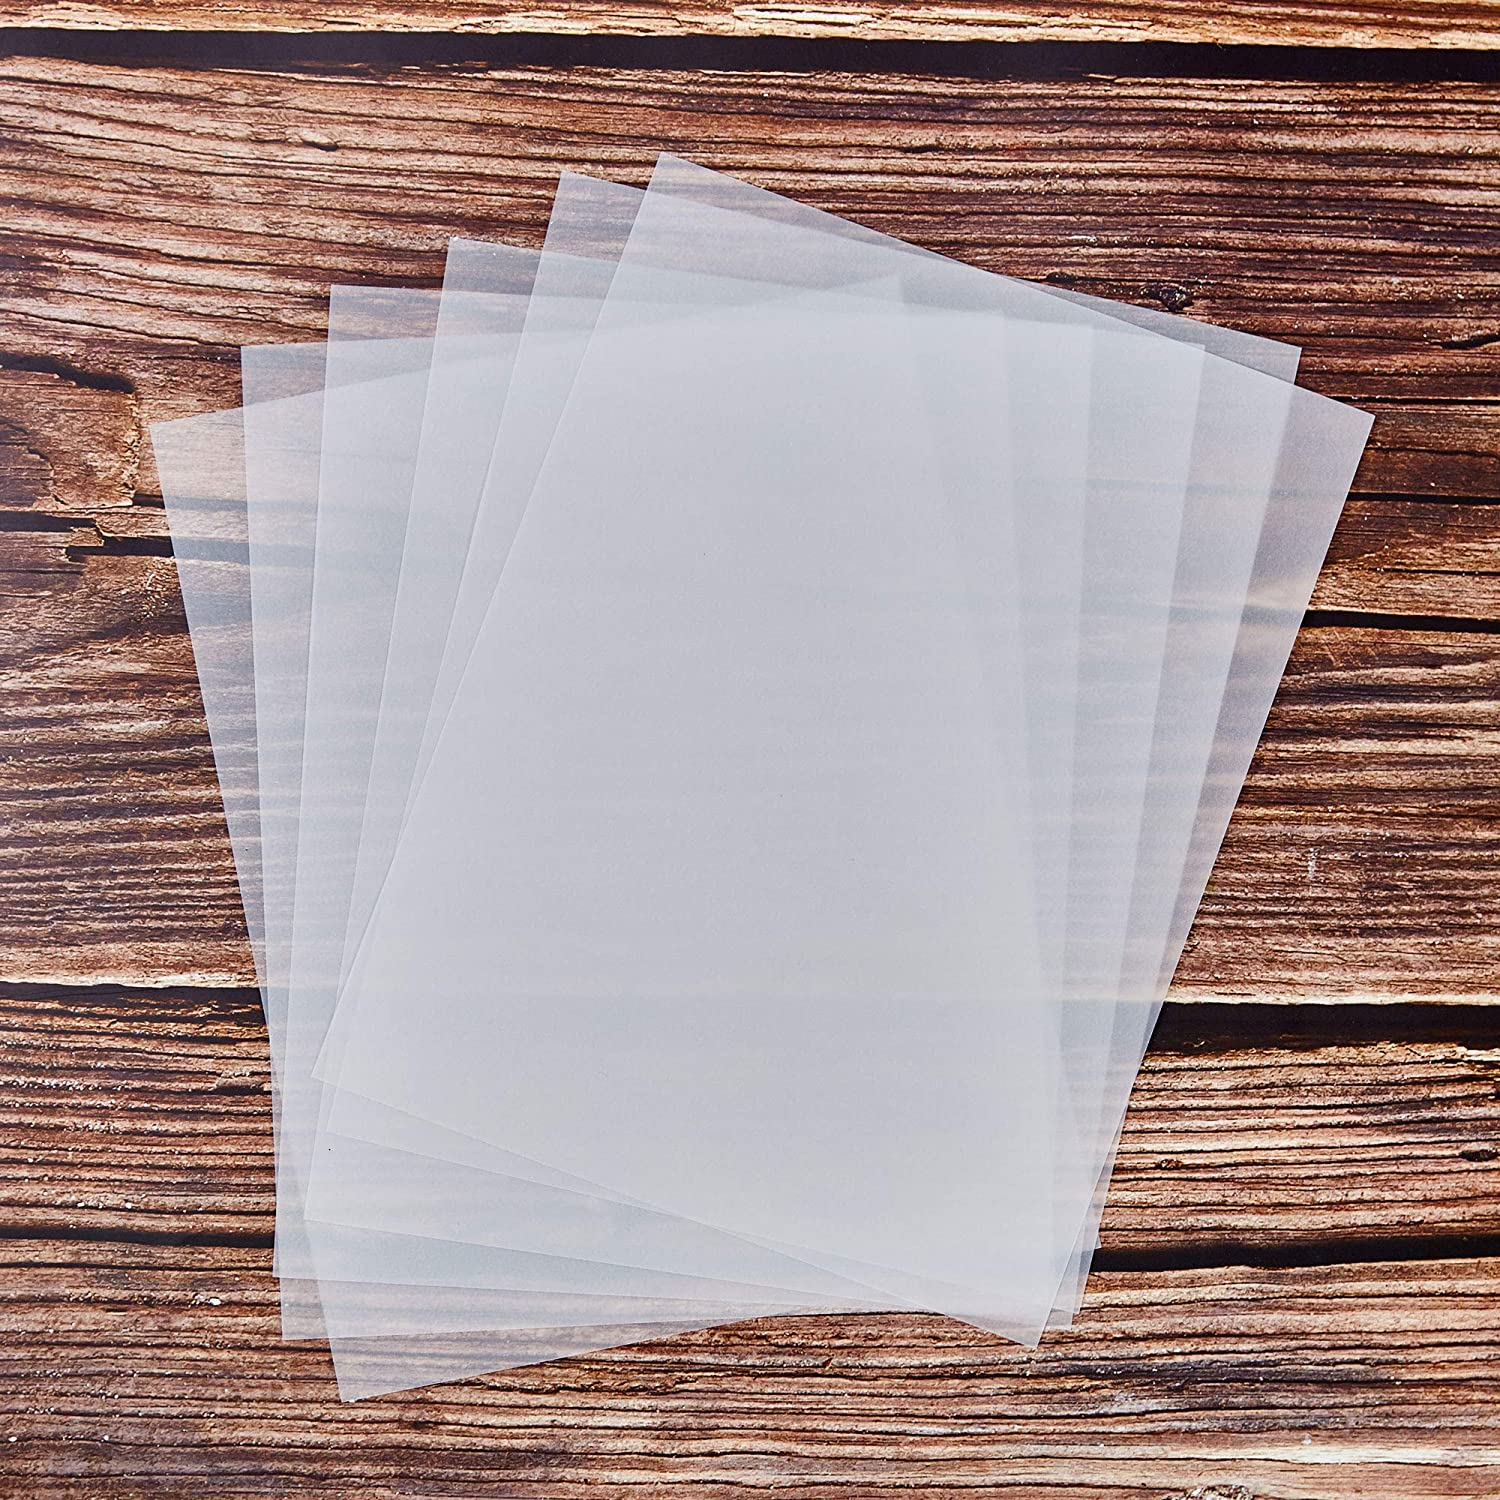 Printing 100-Sheet Vellum Paper Scrapbooking 8.5 x 11 Inches Transparent Clear Sketching Paper for Tracing Translucent Paper